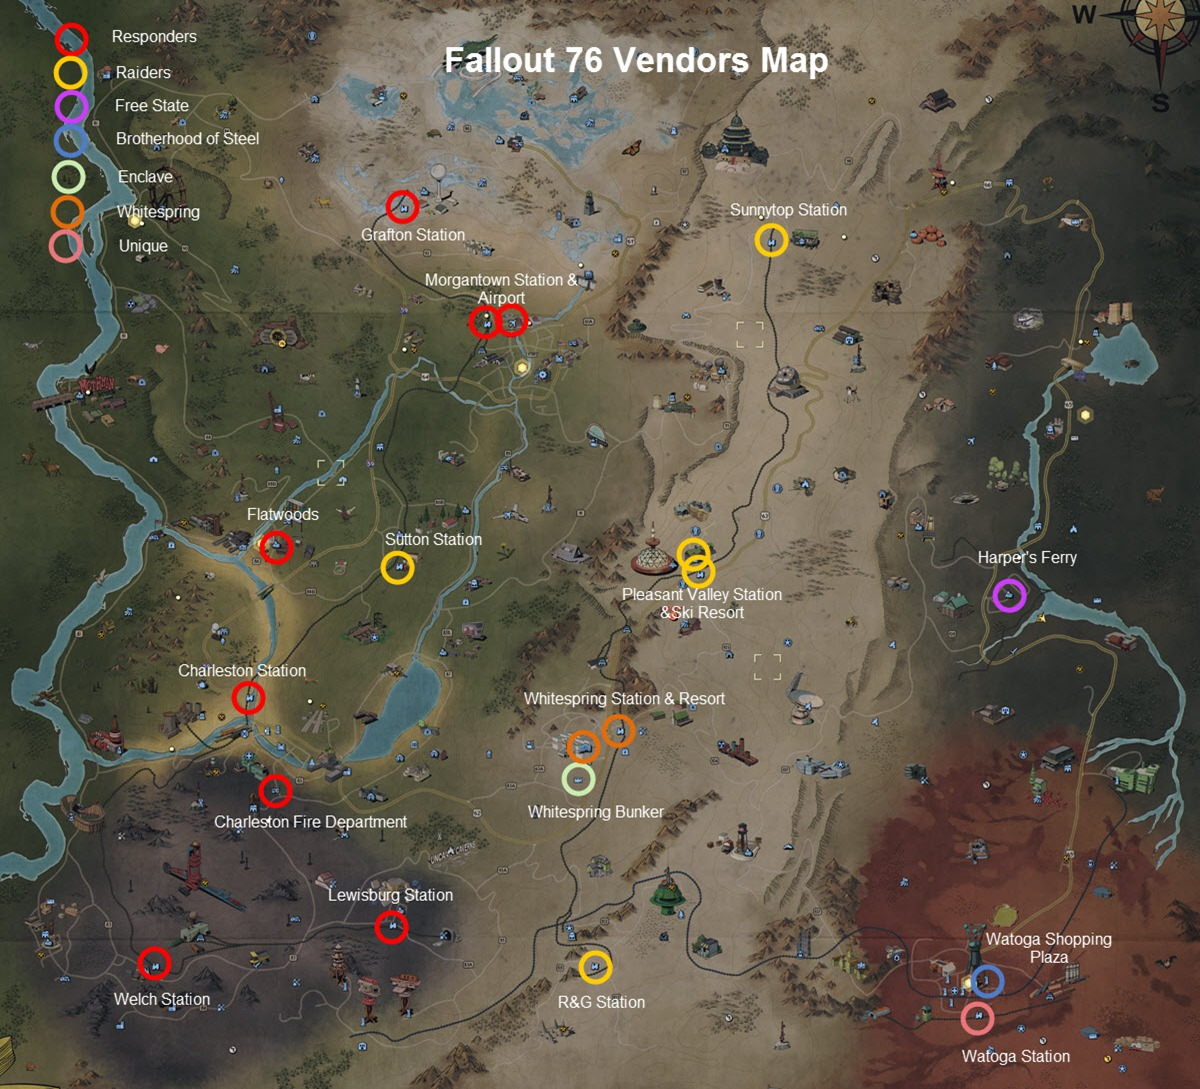 Fallout 76 Vendors Locations And Factions Guide Dulfy